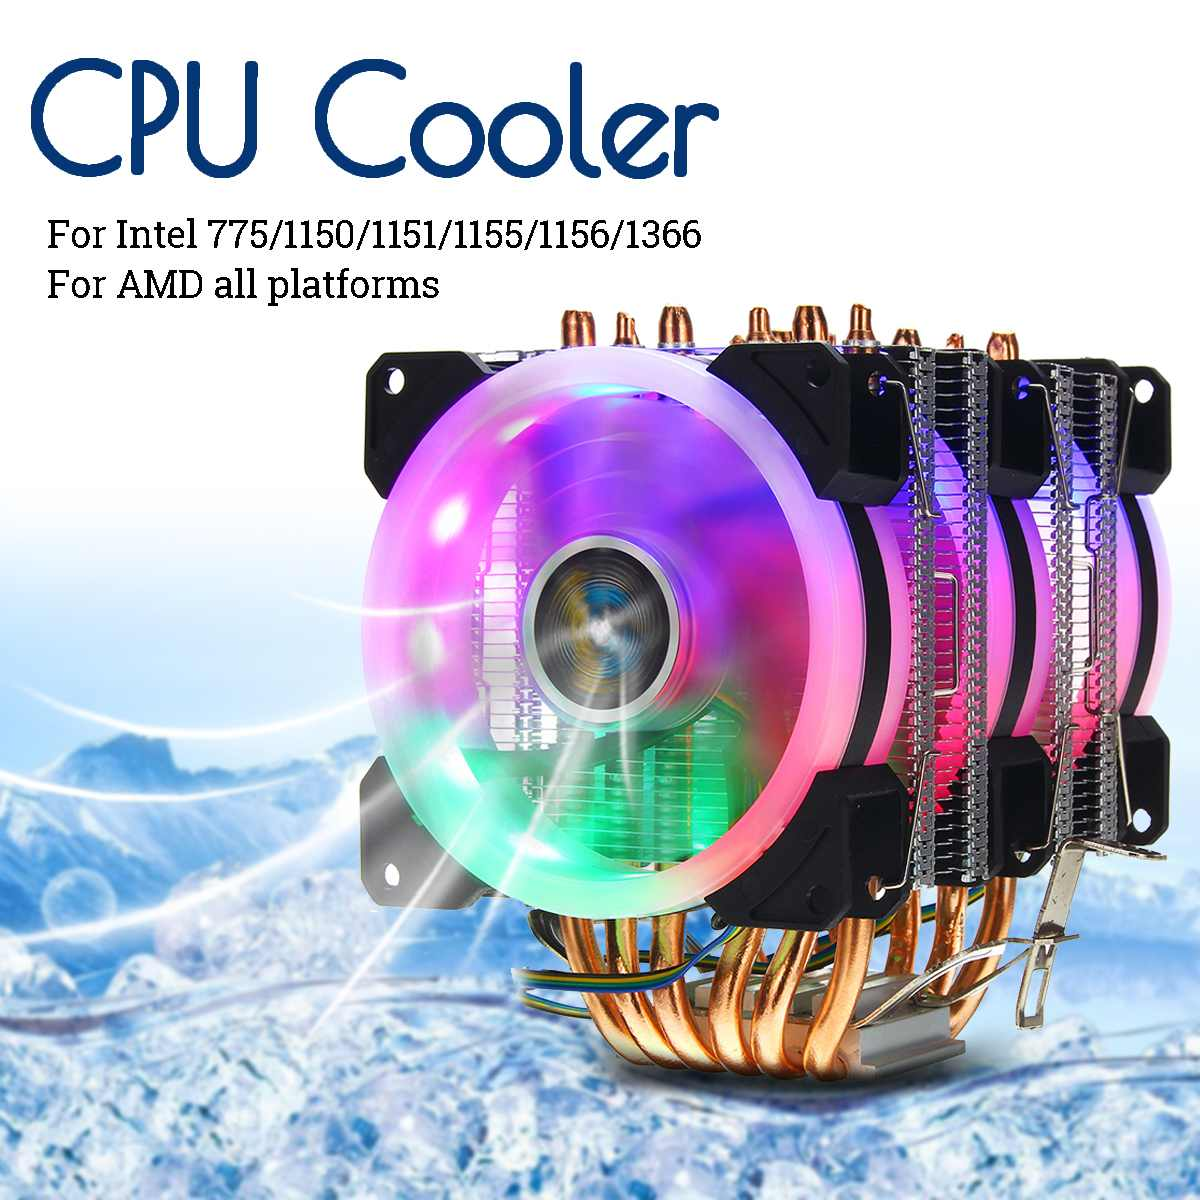 CPU Cooler 6 Heatpipe RGB LED Fan Quiet 4pin CPU Fan Cooling Heatsink CPU Cooling For Intel 775/1150/1151/1155/1156/1366 For AMD